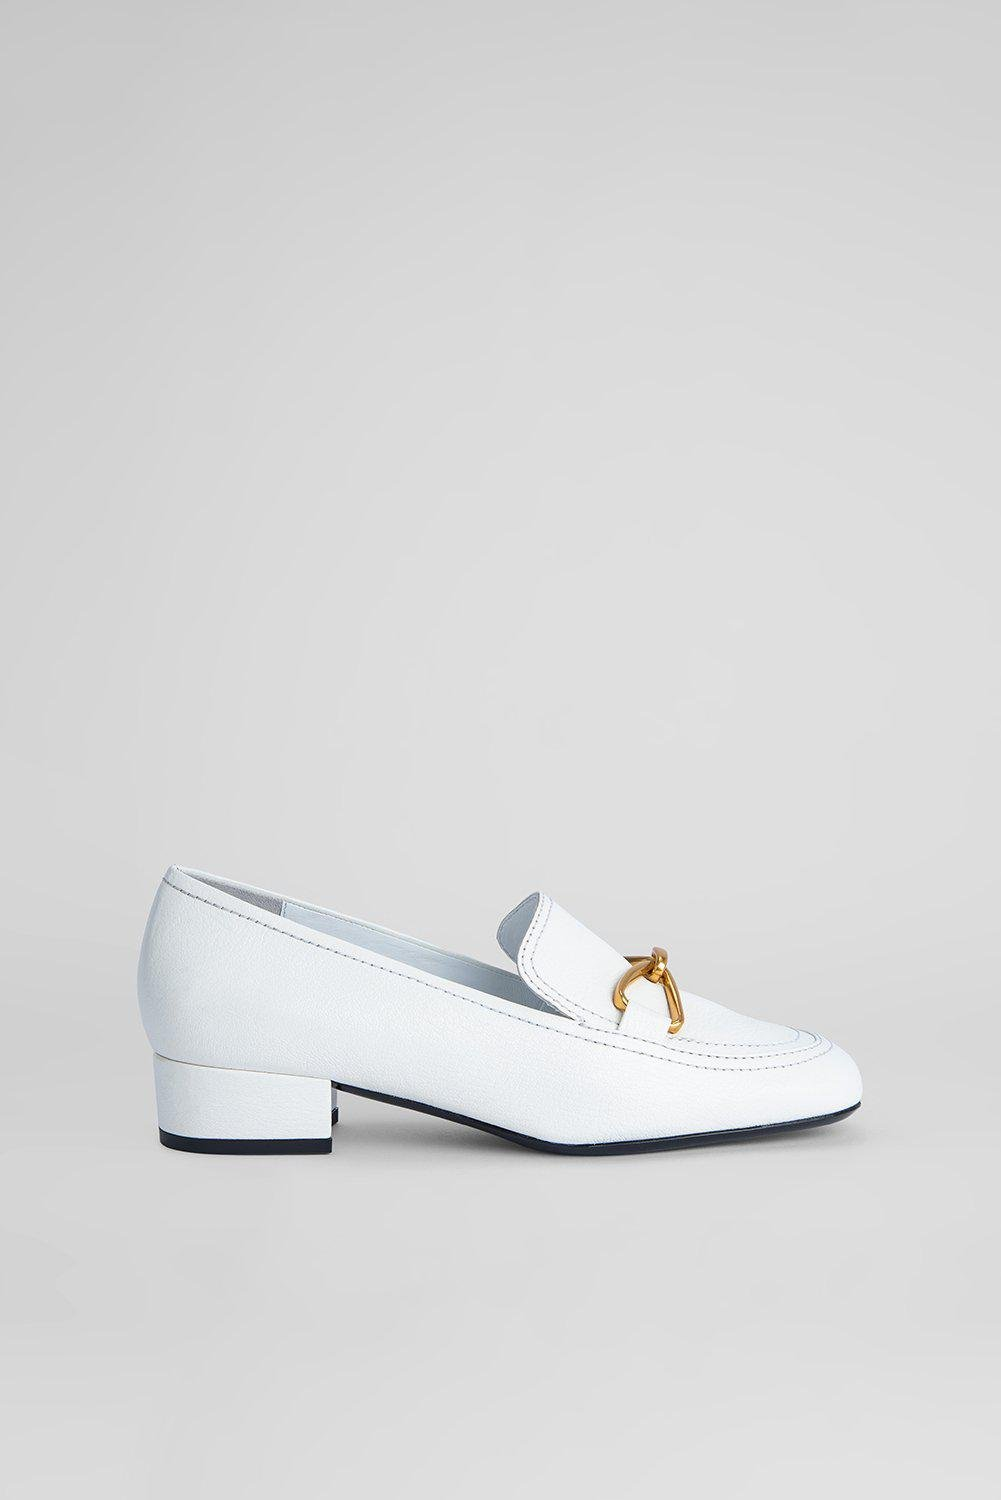 Lino White Grained Leather